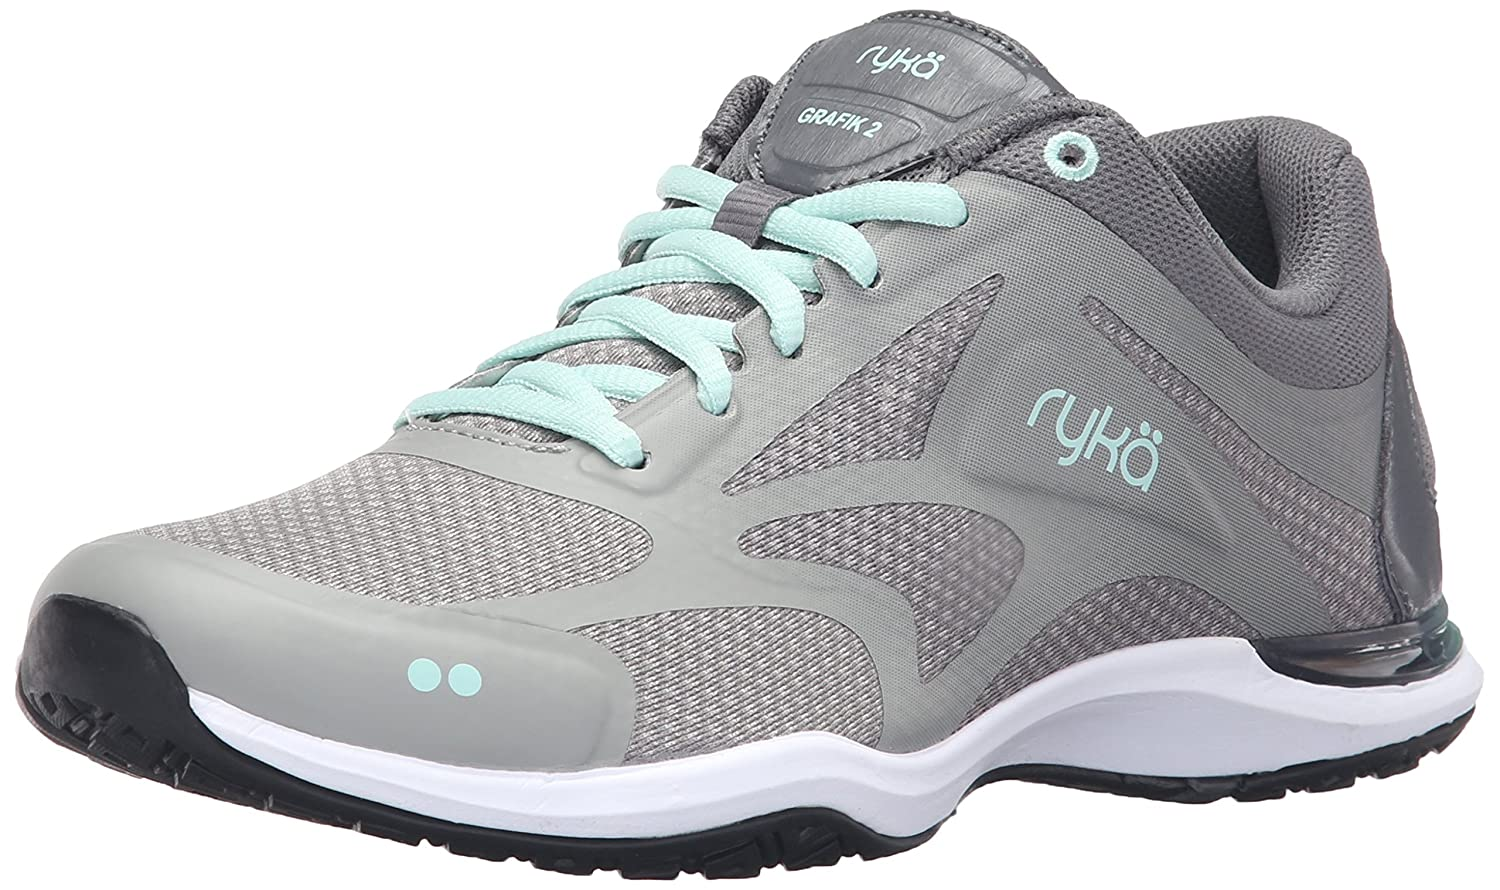 Ryka Women's Grafik 2 Cross-Trainer Shoe B01A6203AI 6.5 B(M) US|Grey/Mint